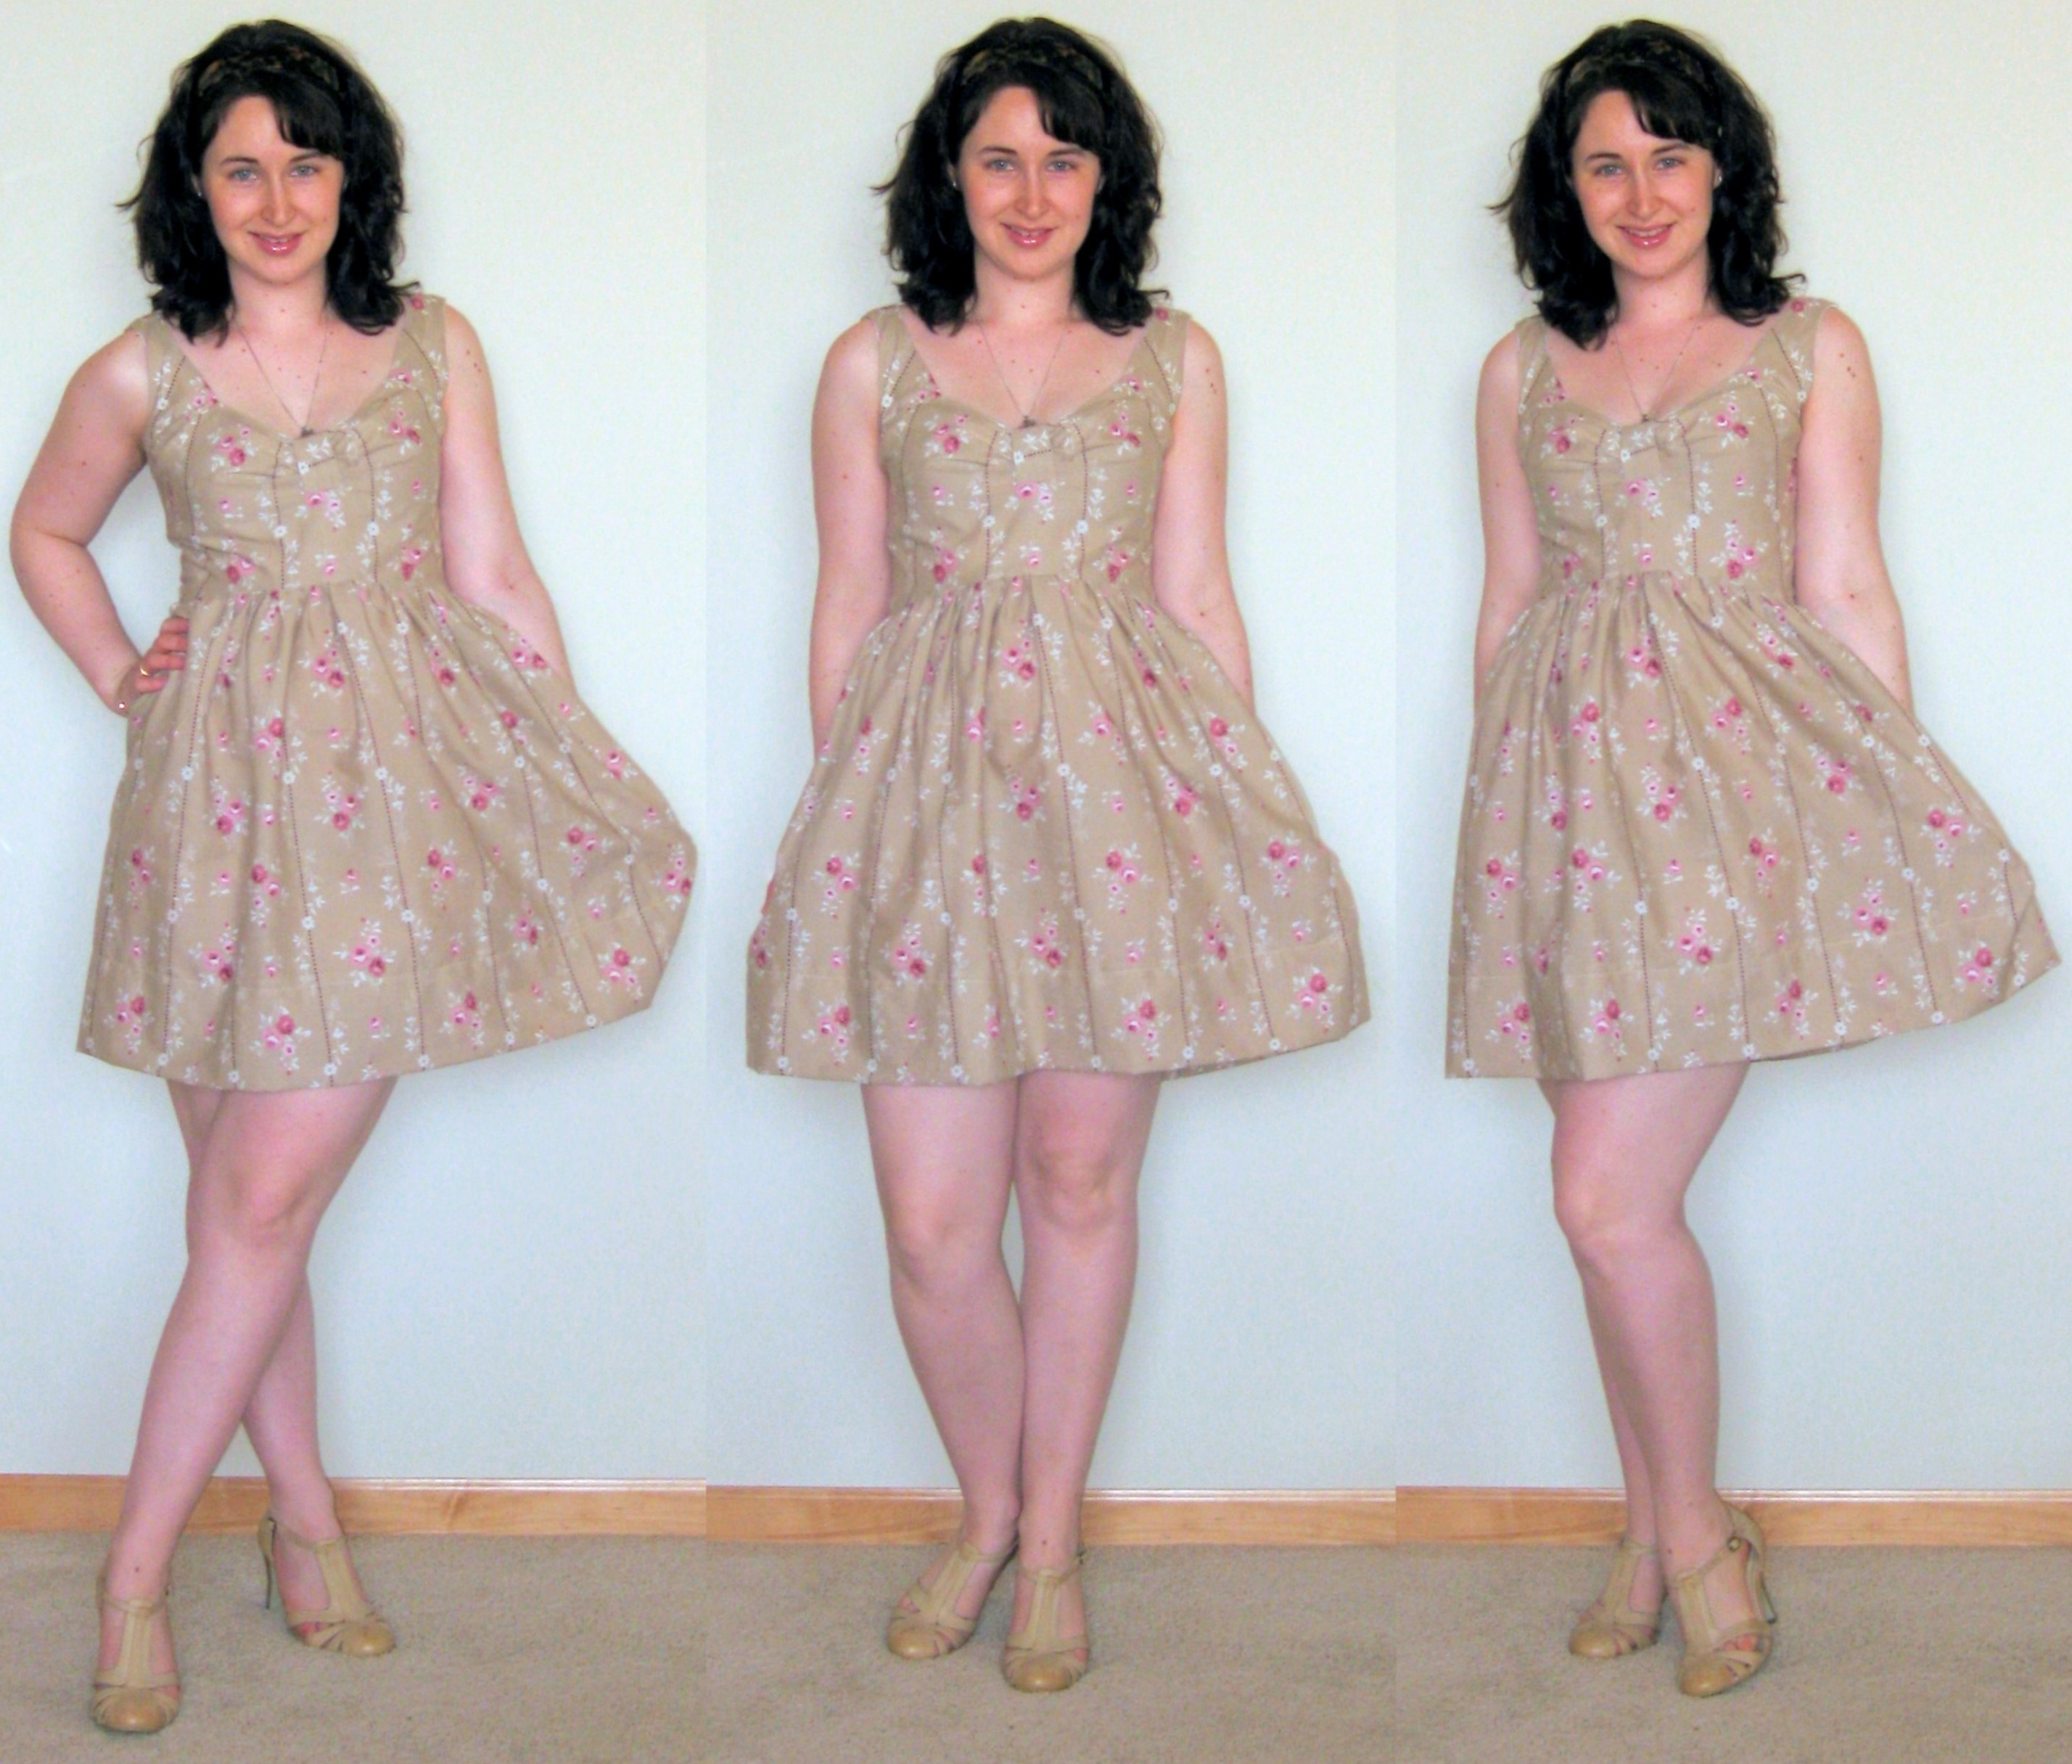 fec013030 A very girly dress from two pillowcases — megan nielsen design diary